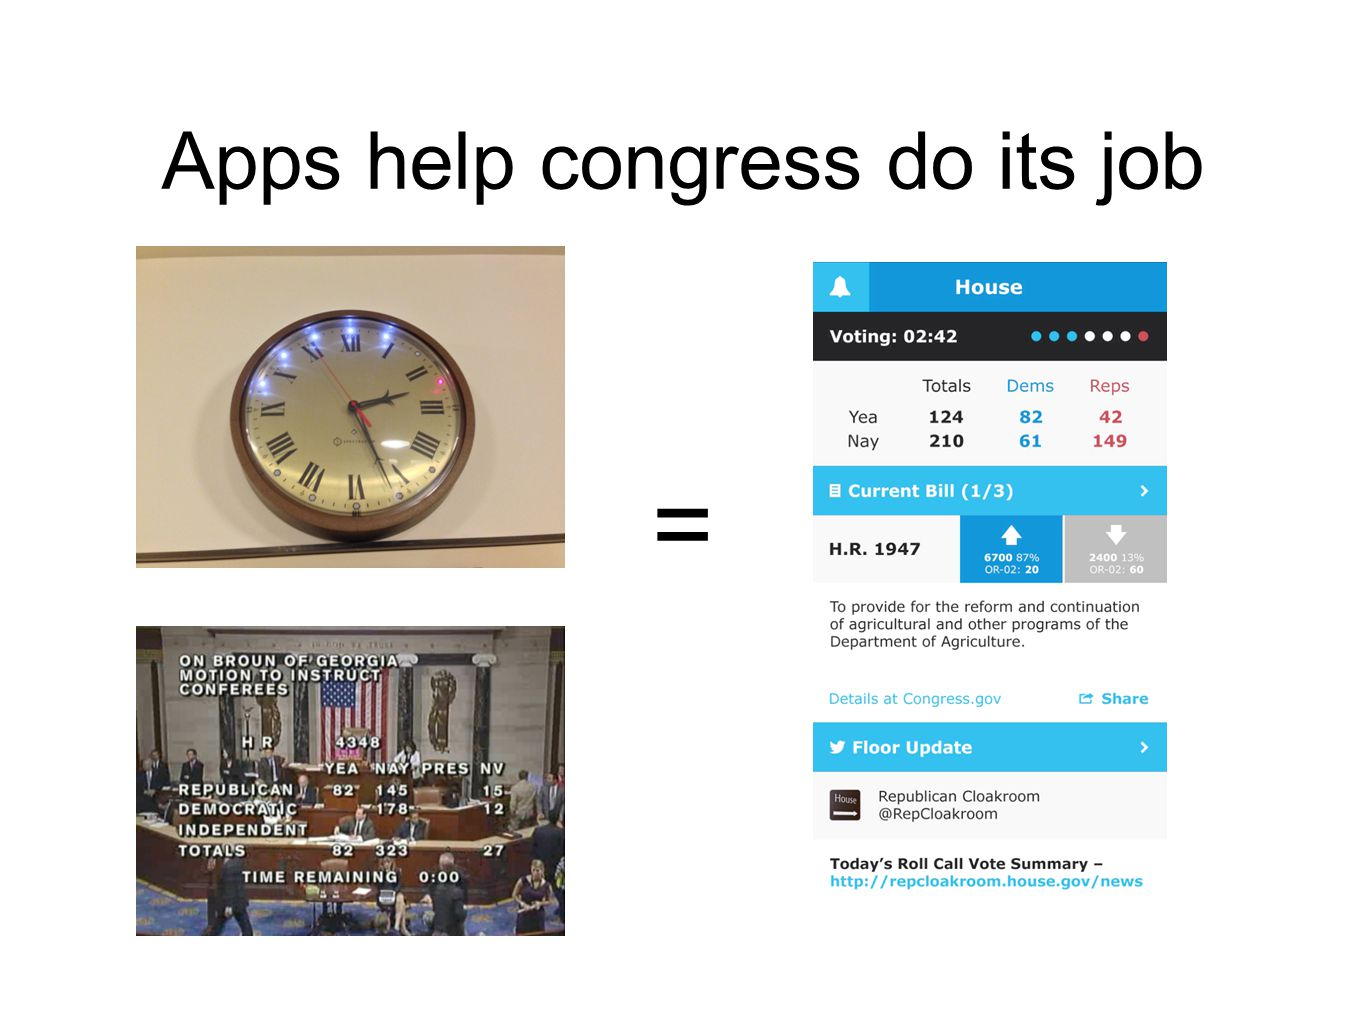 Capitol Bells has over 15,000 mobile users Including Members of Congress, congressional staff, lobbyists, and reporters